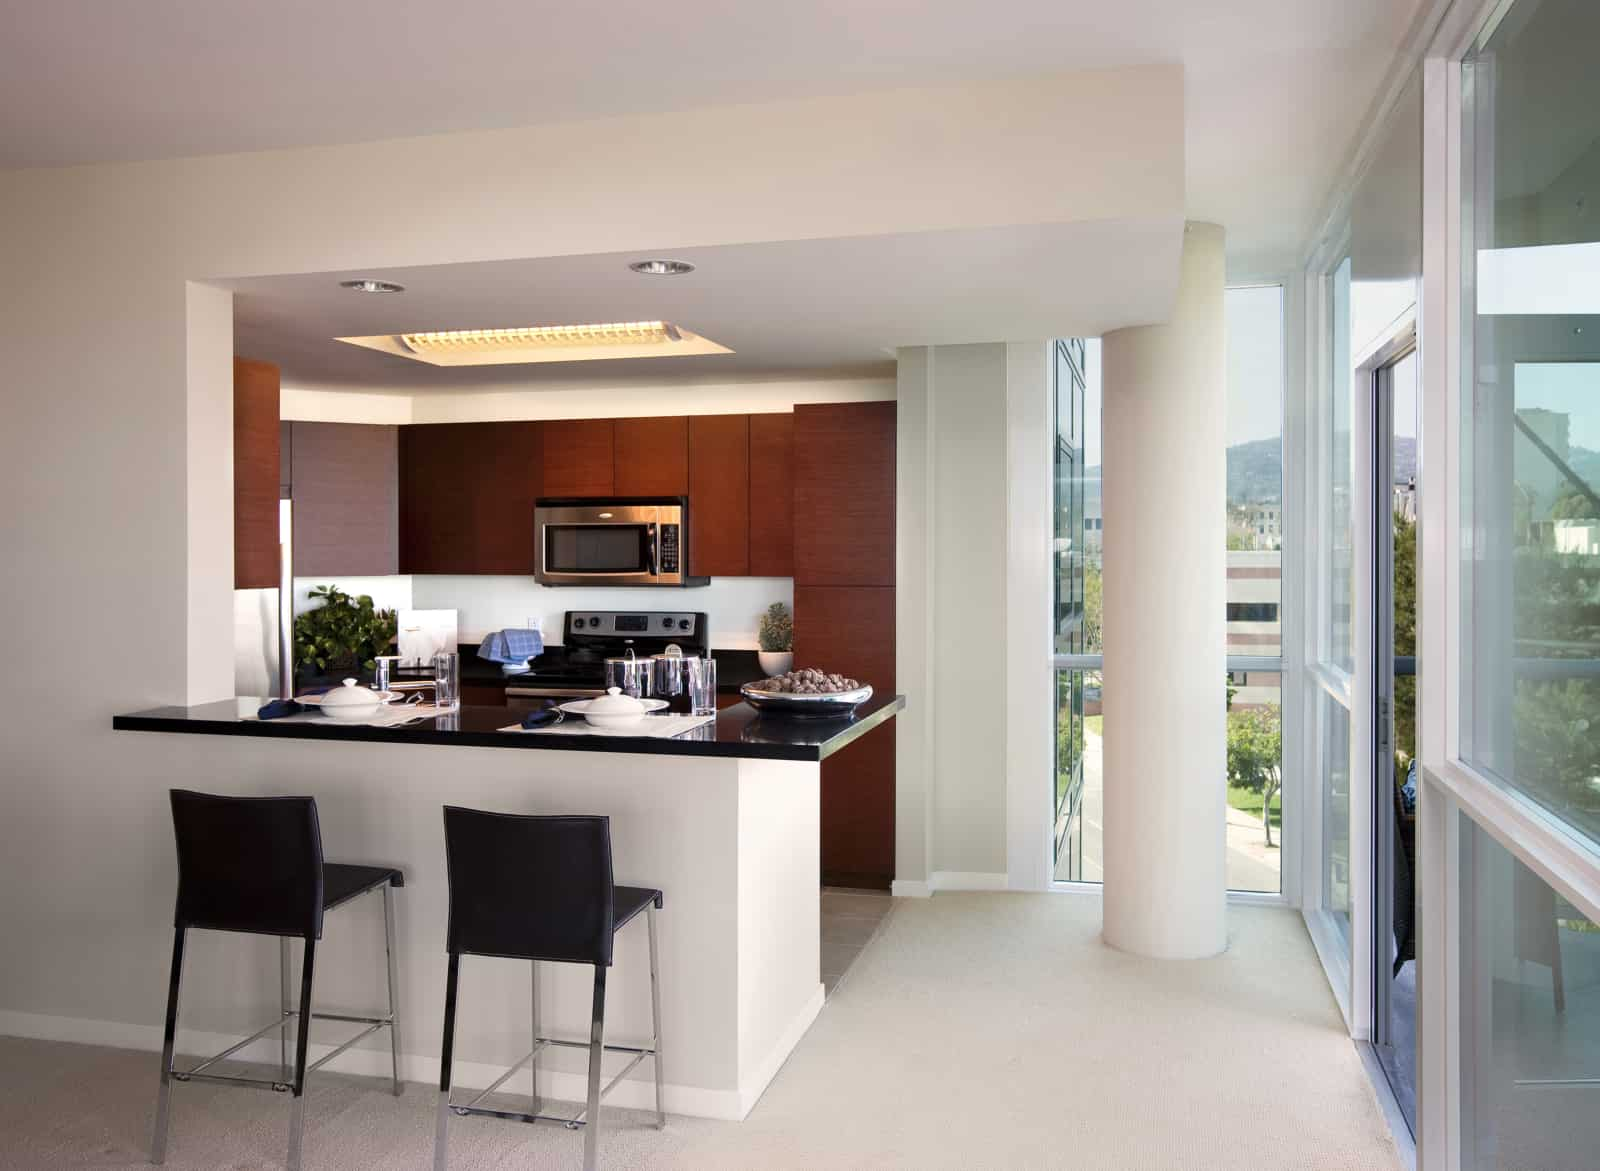 Interior of bar counter and kitchen in a high-rise apartment.